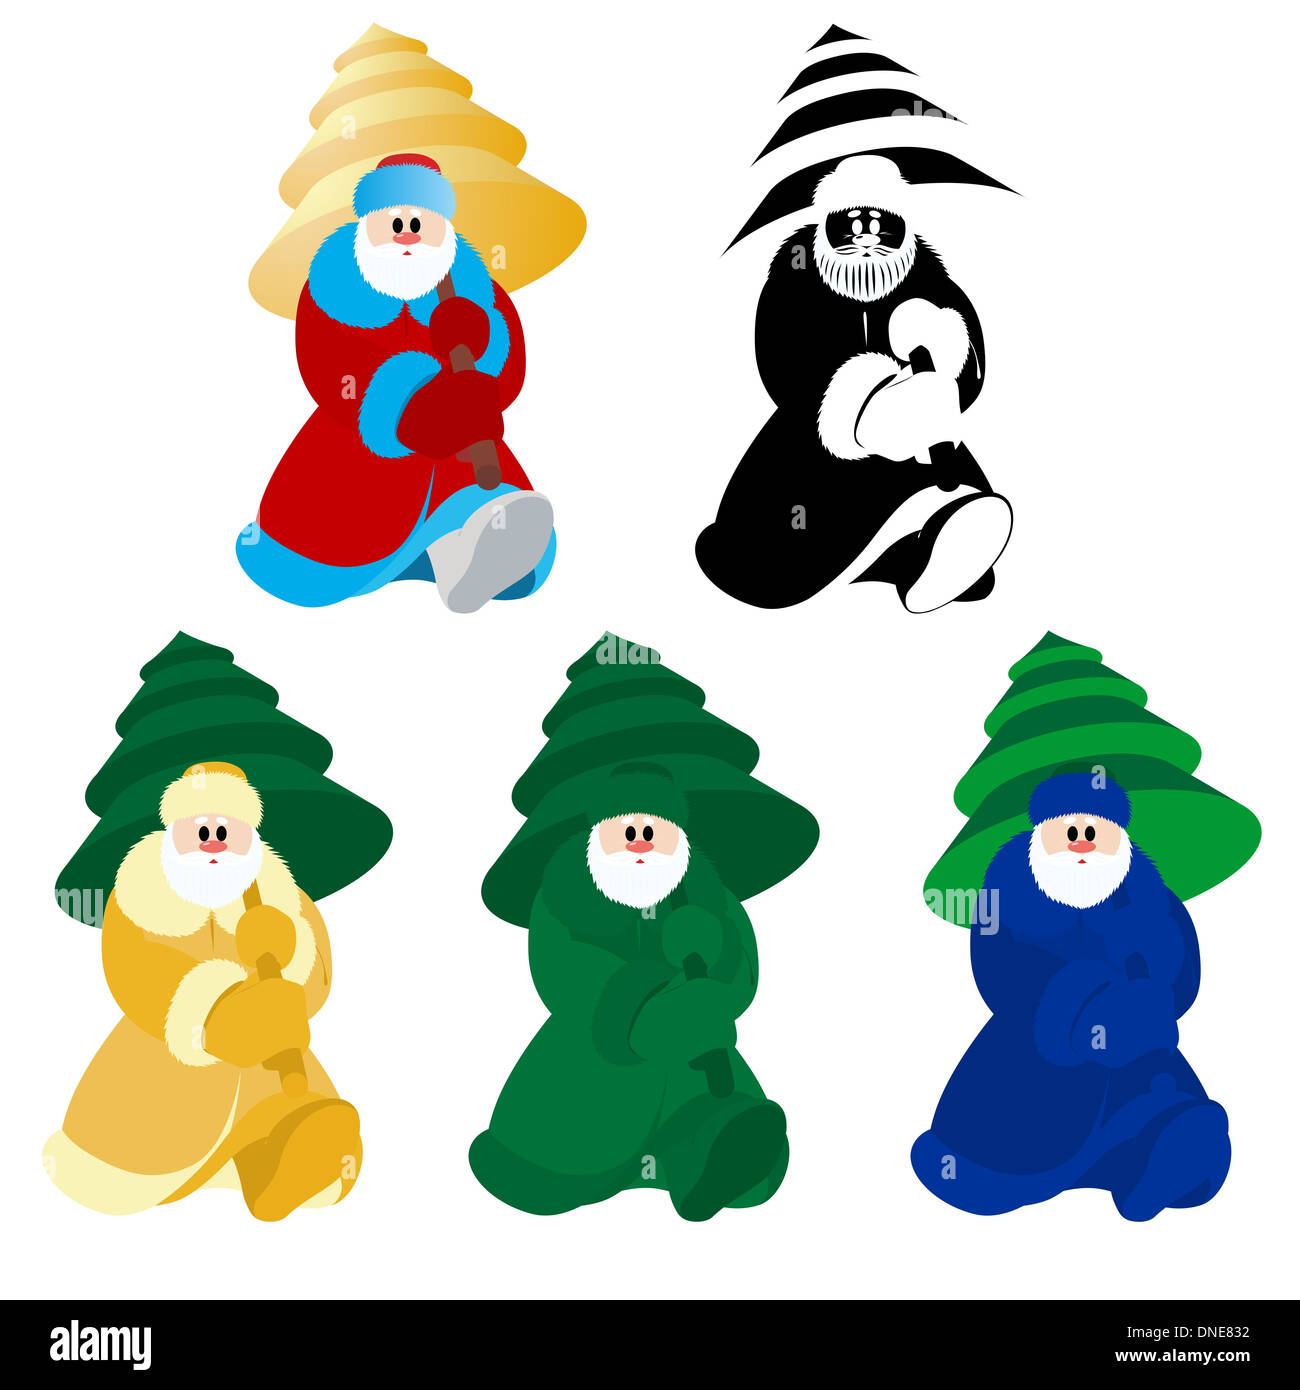 Santa Boots Black Stock Photos & Santa Boots Black Stock Images - Alamy